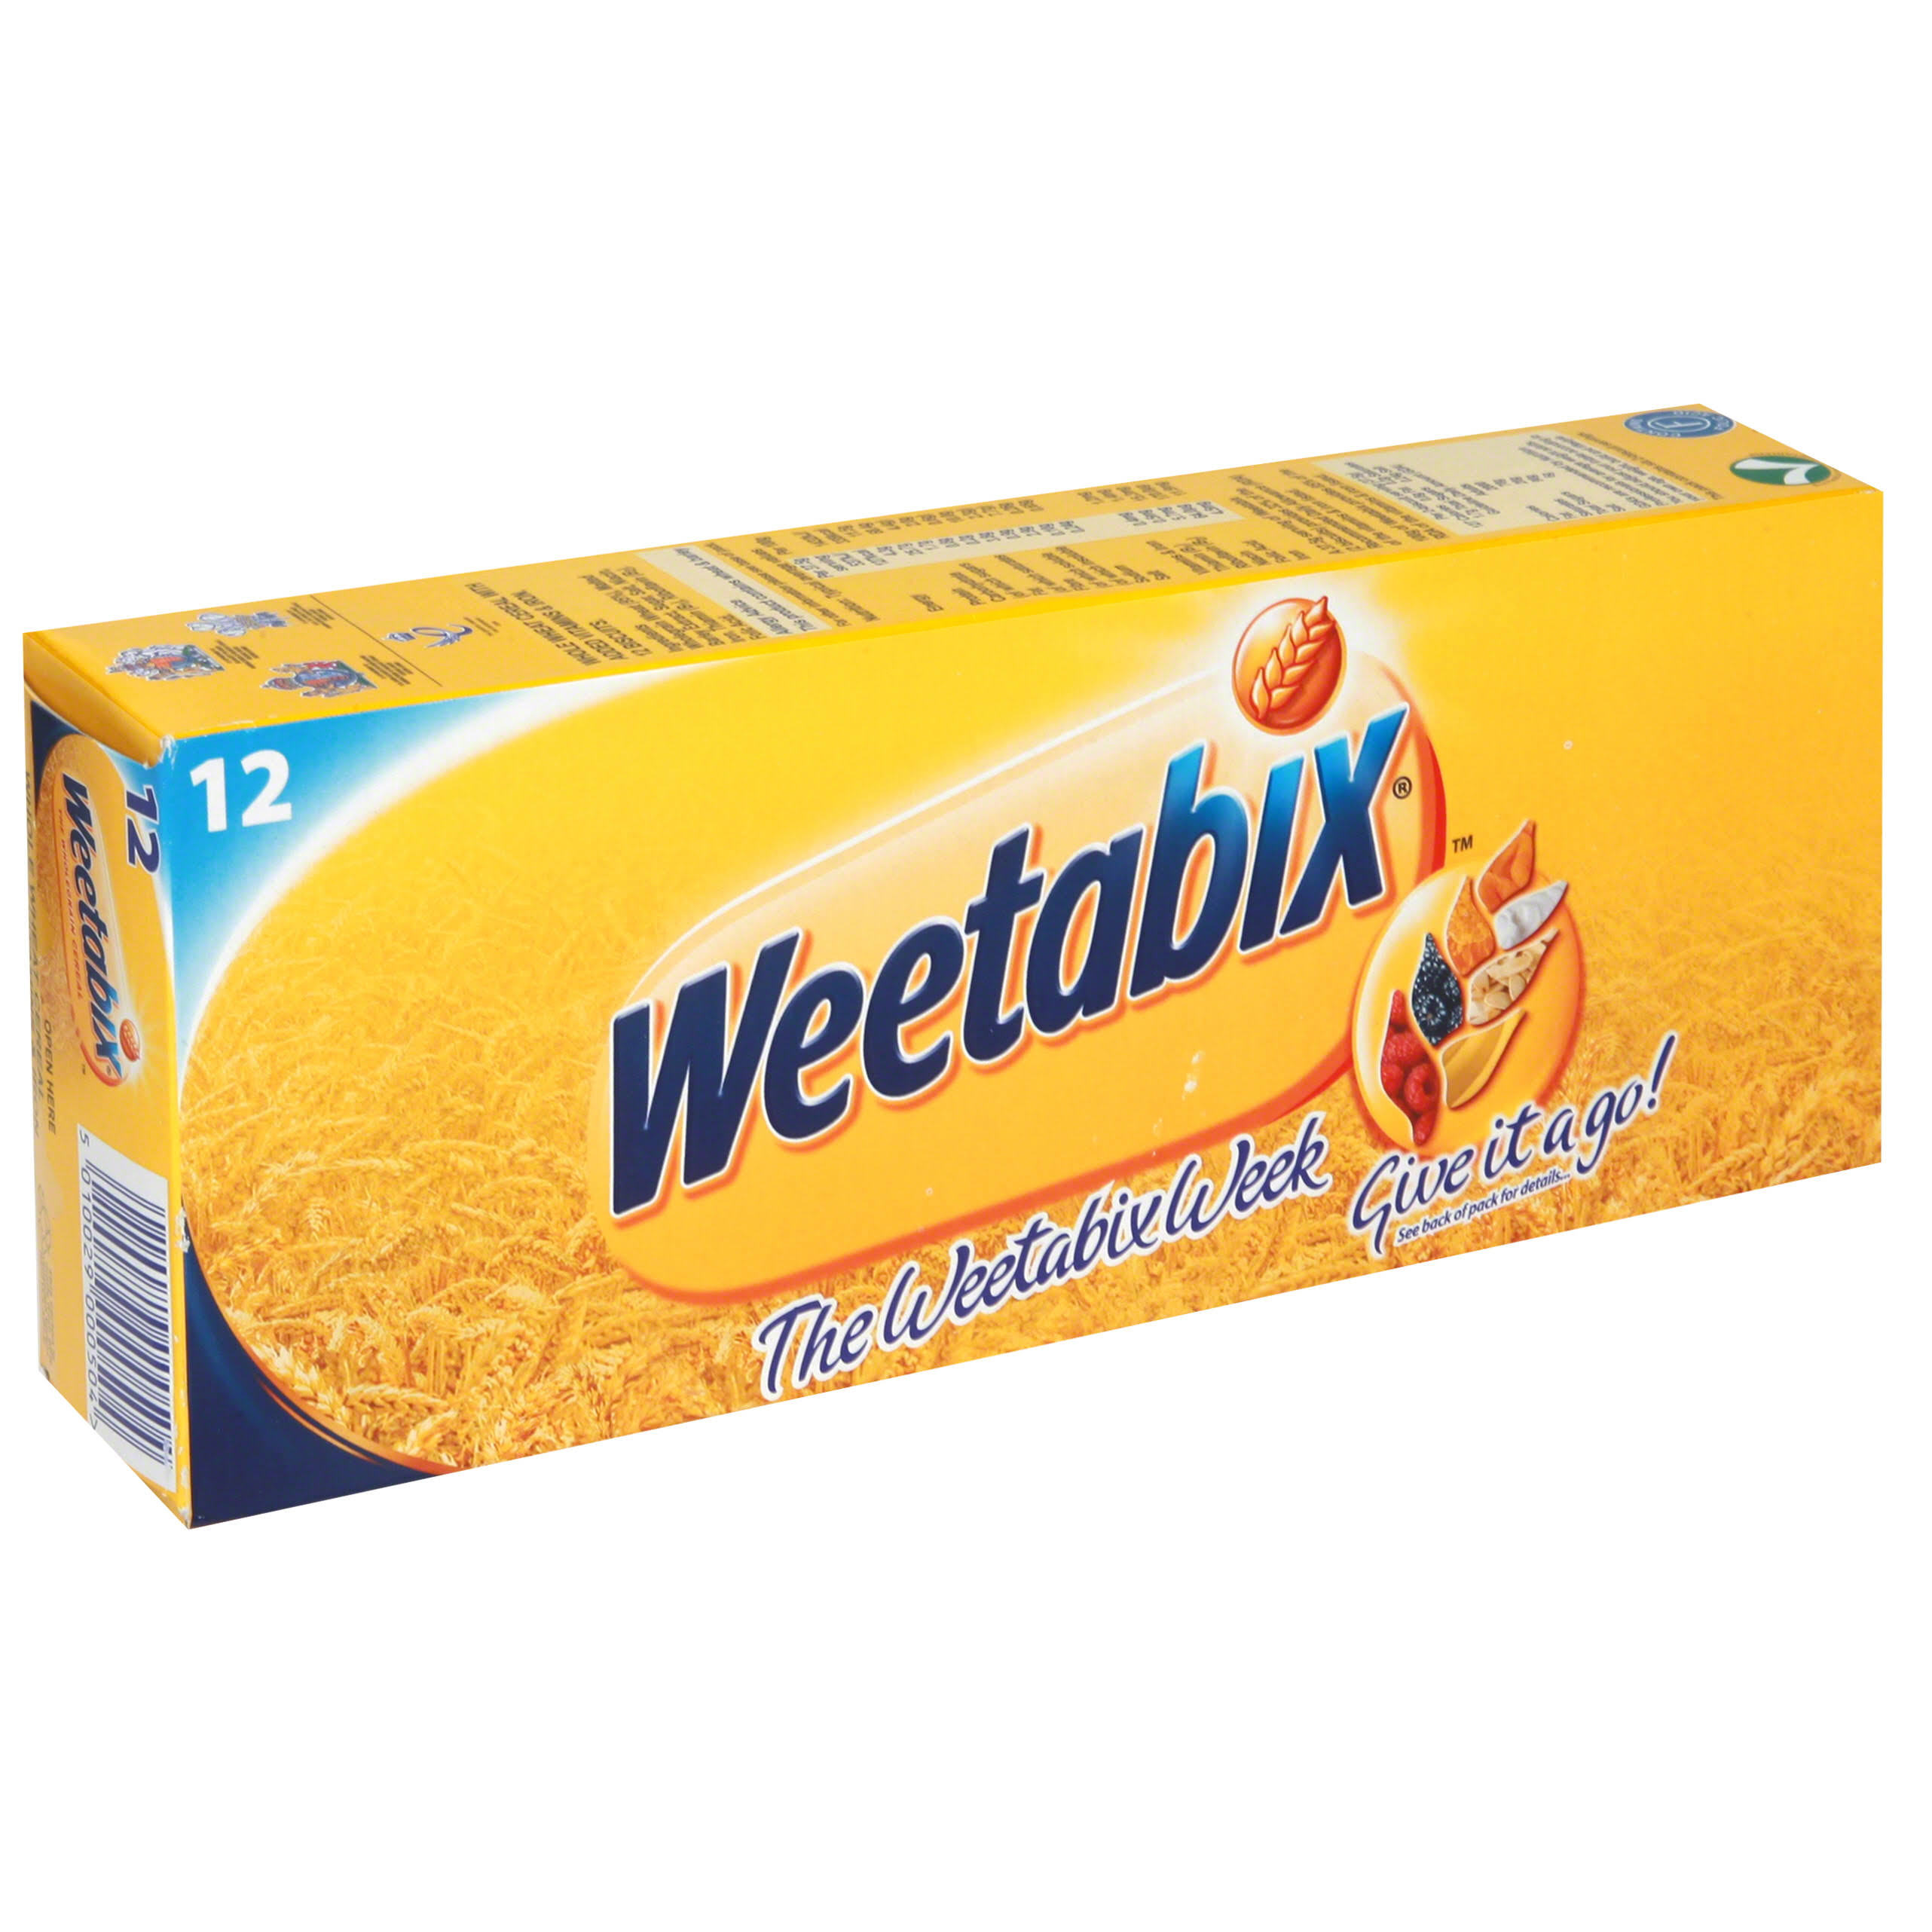 Weetabix Whole Wheat Cereal, with Added Vitamins & Iron - 12 biscuits